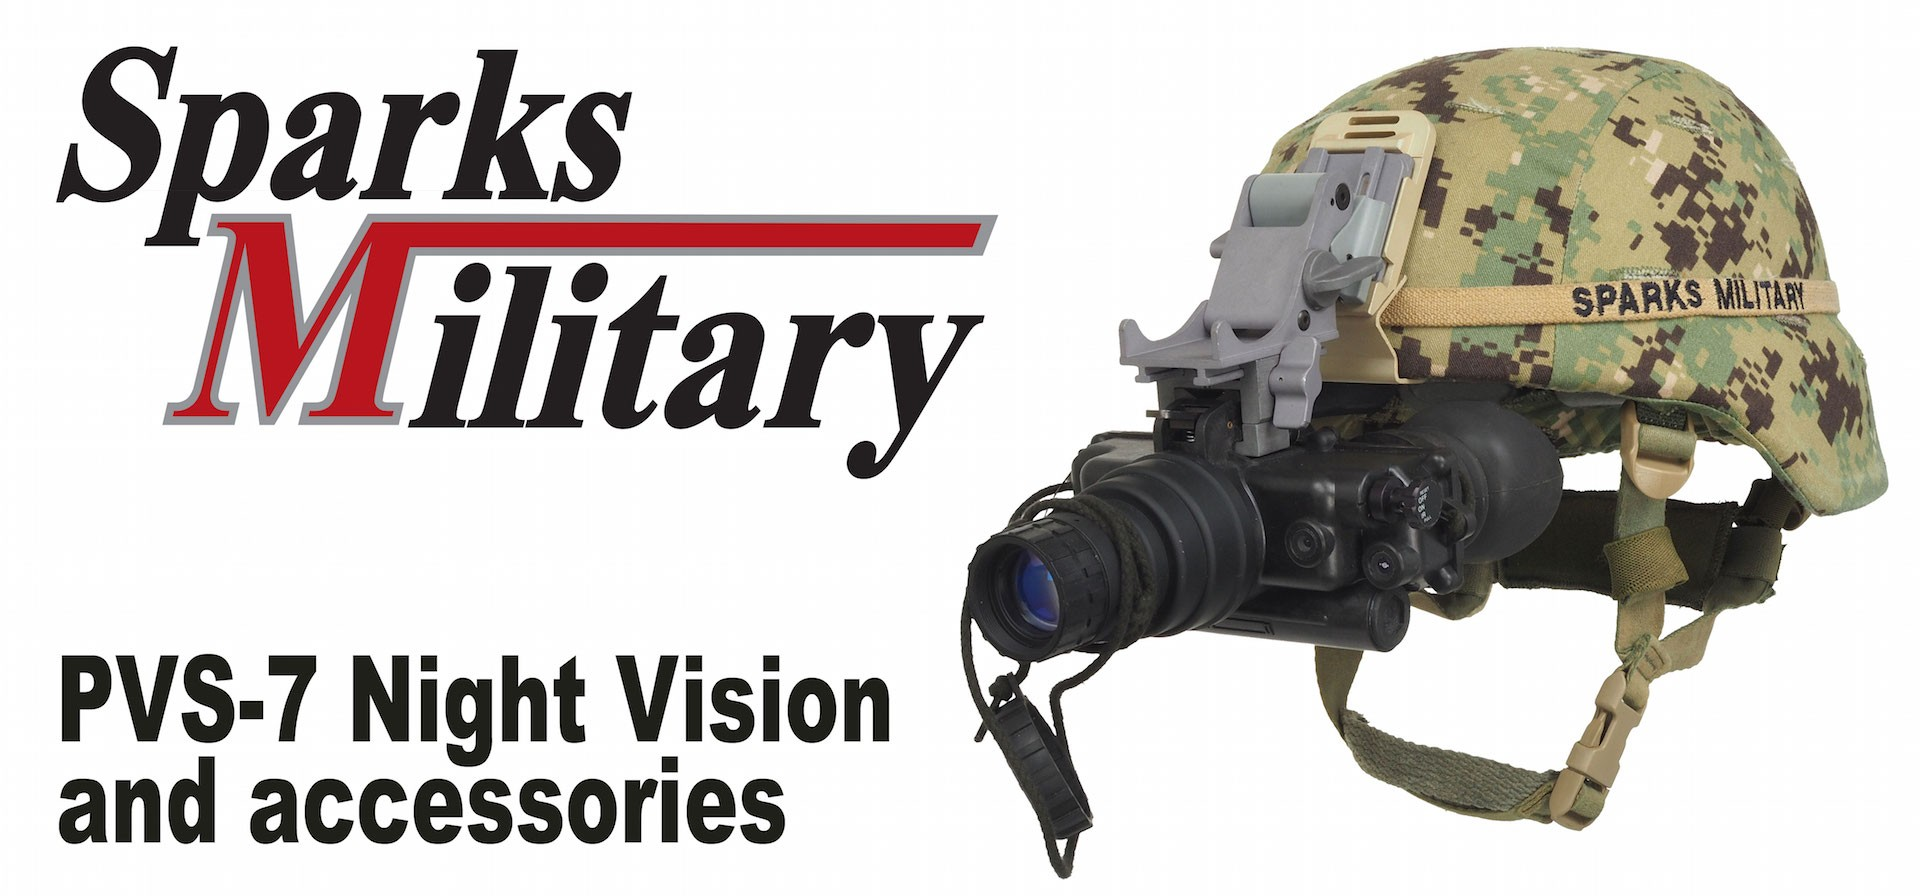 US Army Night Vision AN PVS-7 you find them at sparks military online store